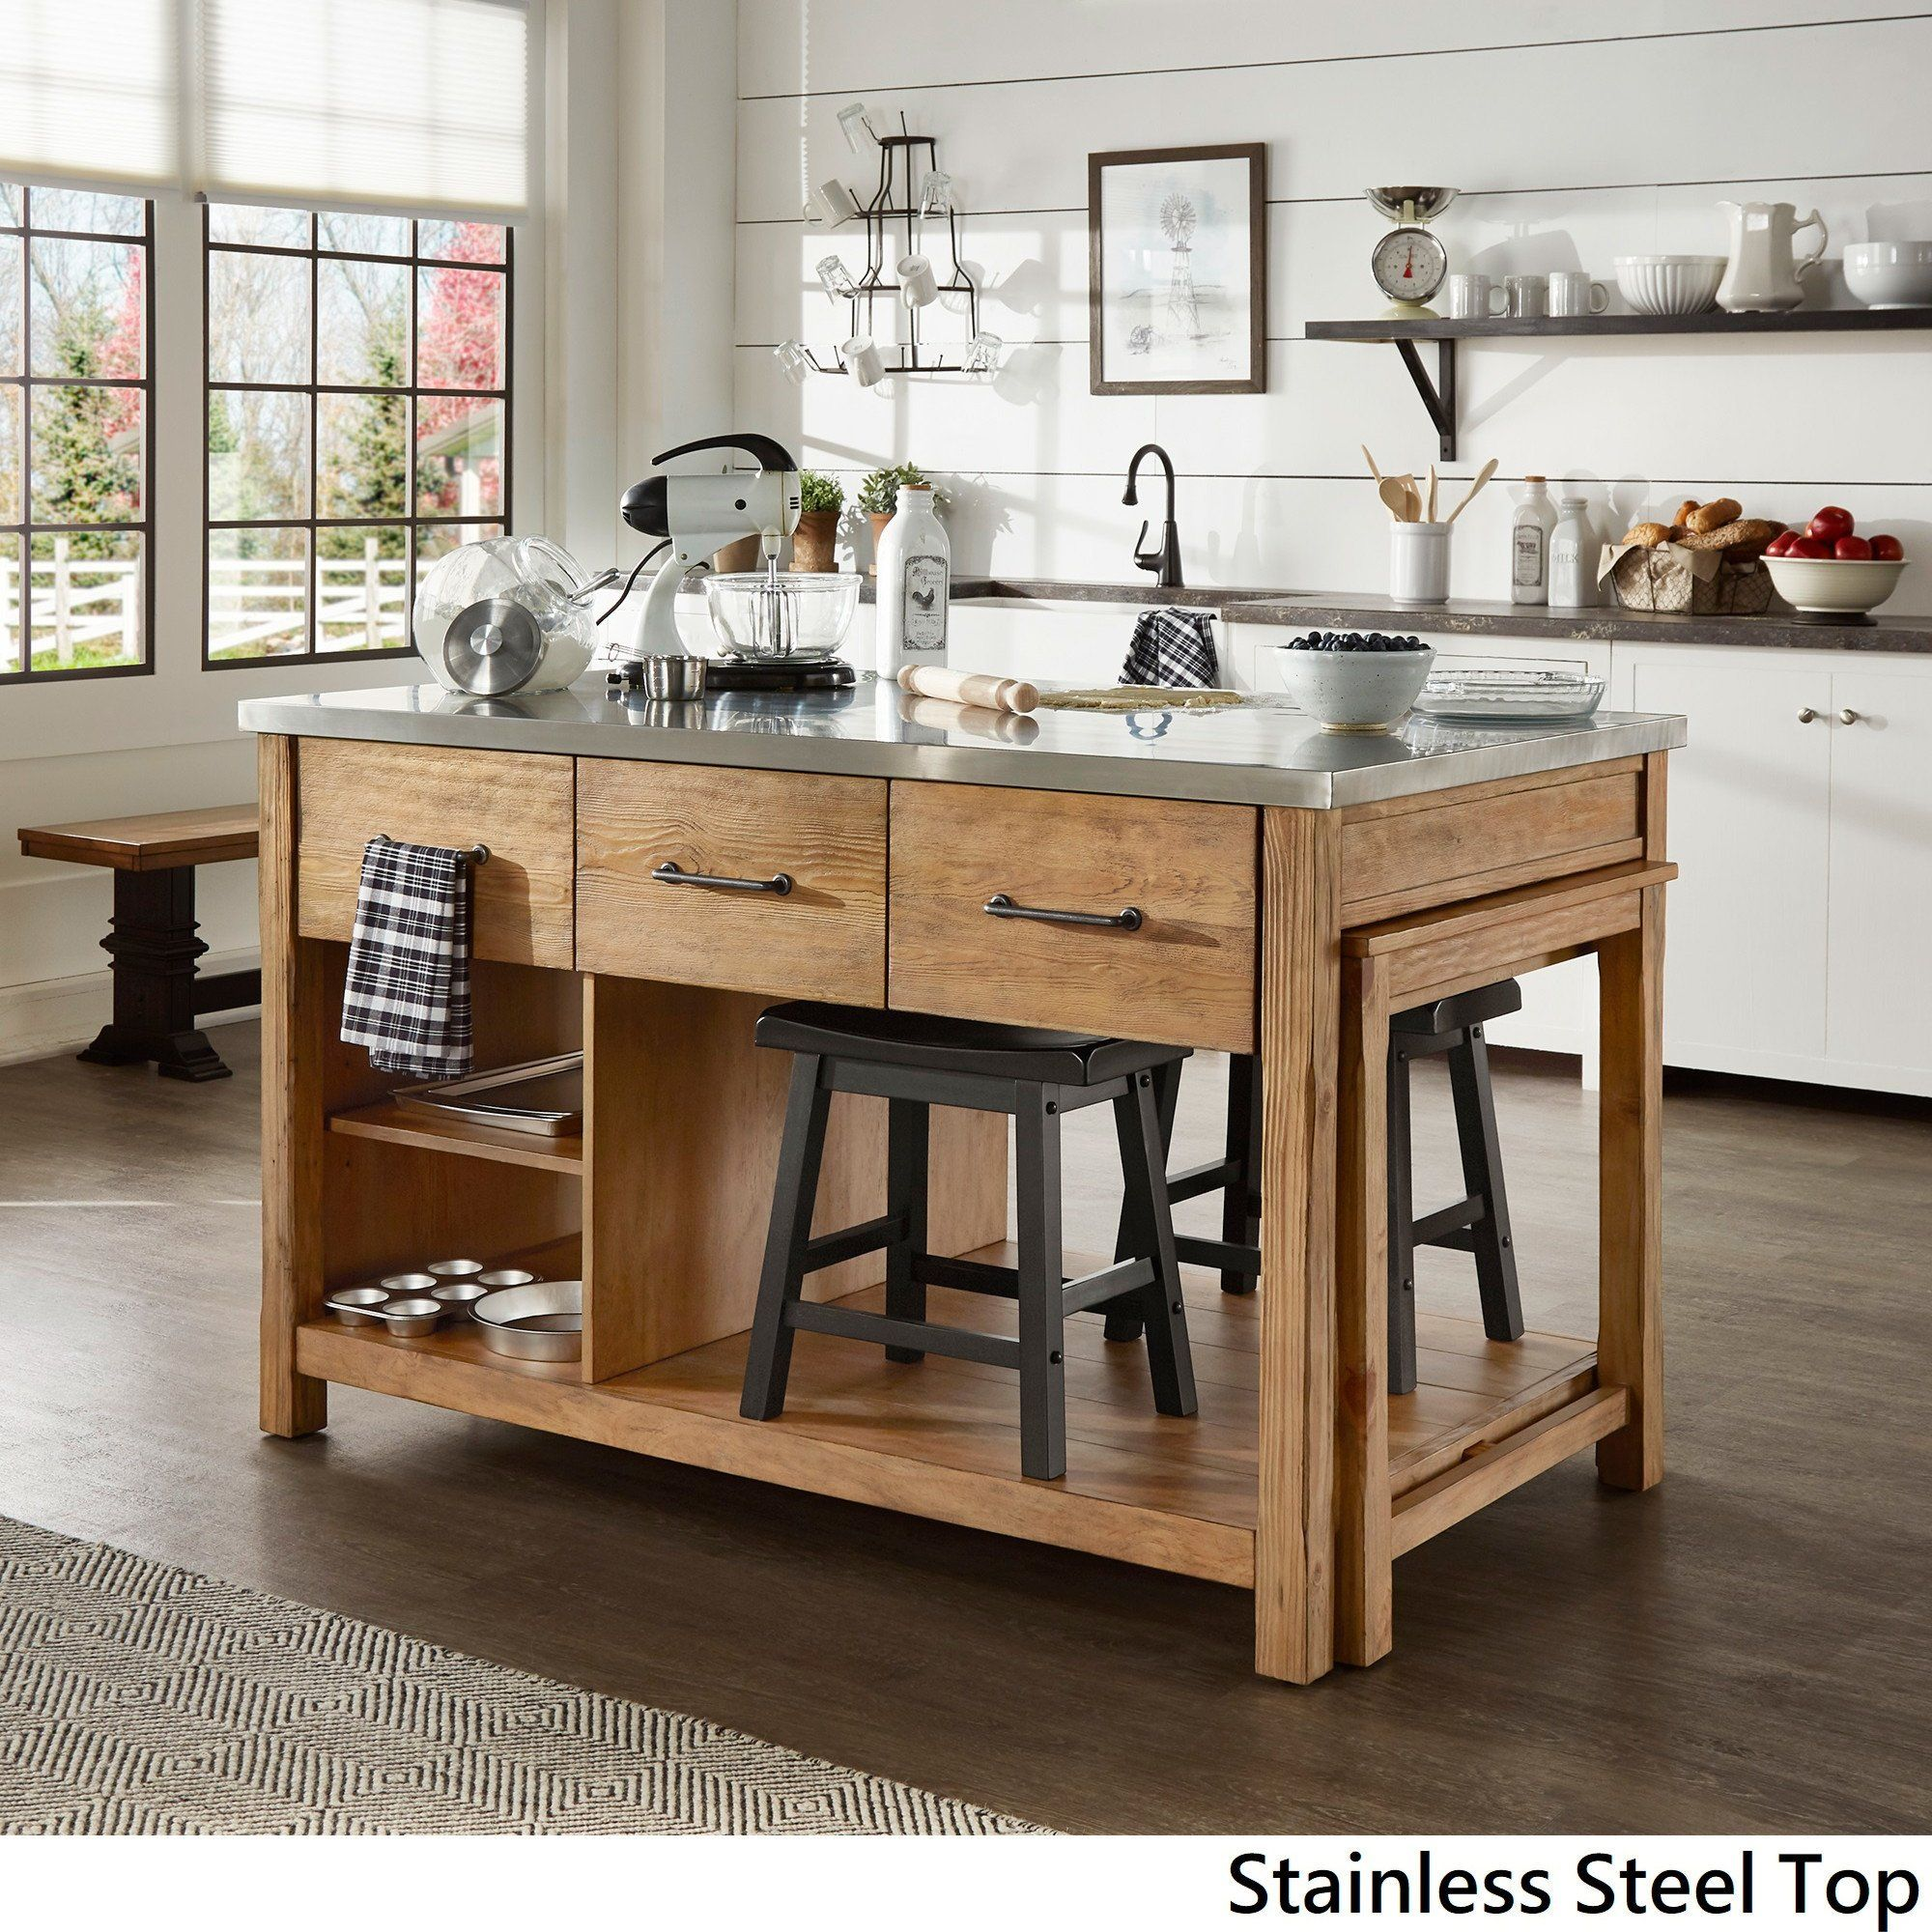 Overstock Com Online Shopping Bedding Furniture Electronics Jewelry Clothing More Kitchen Island Decor Kitchen Design Kitchen Furniture Reclaimed kitchen islands for sale